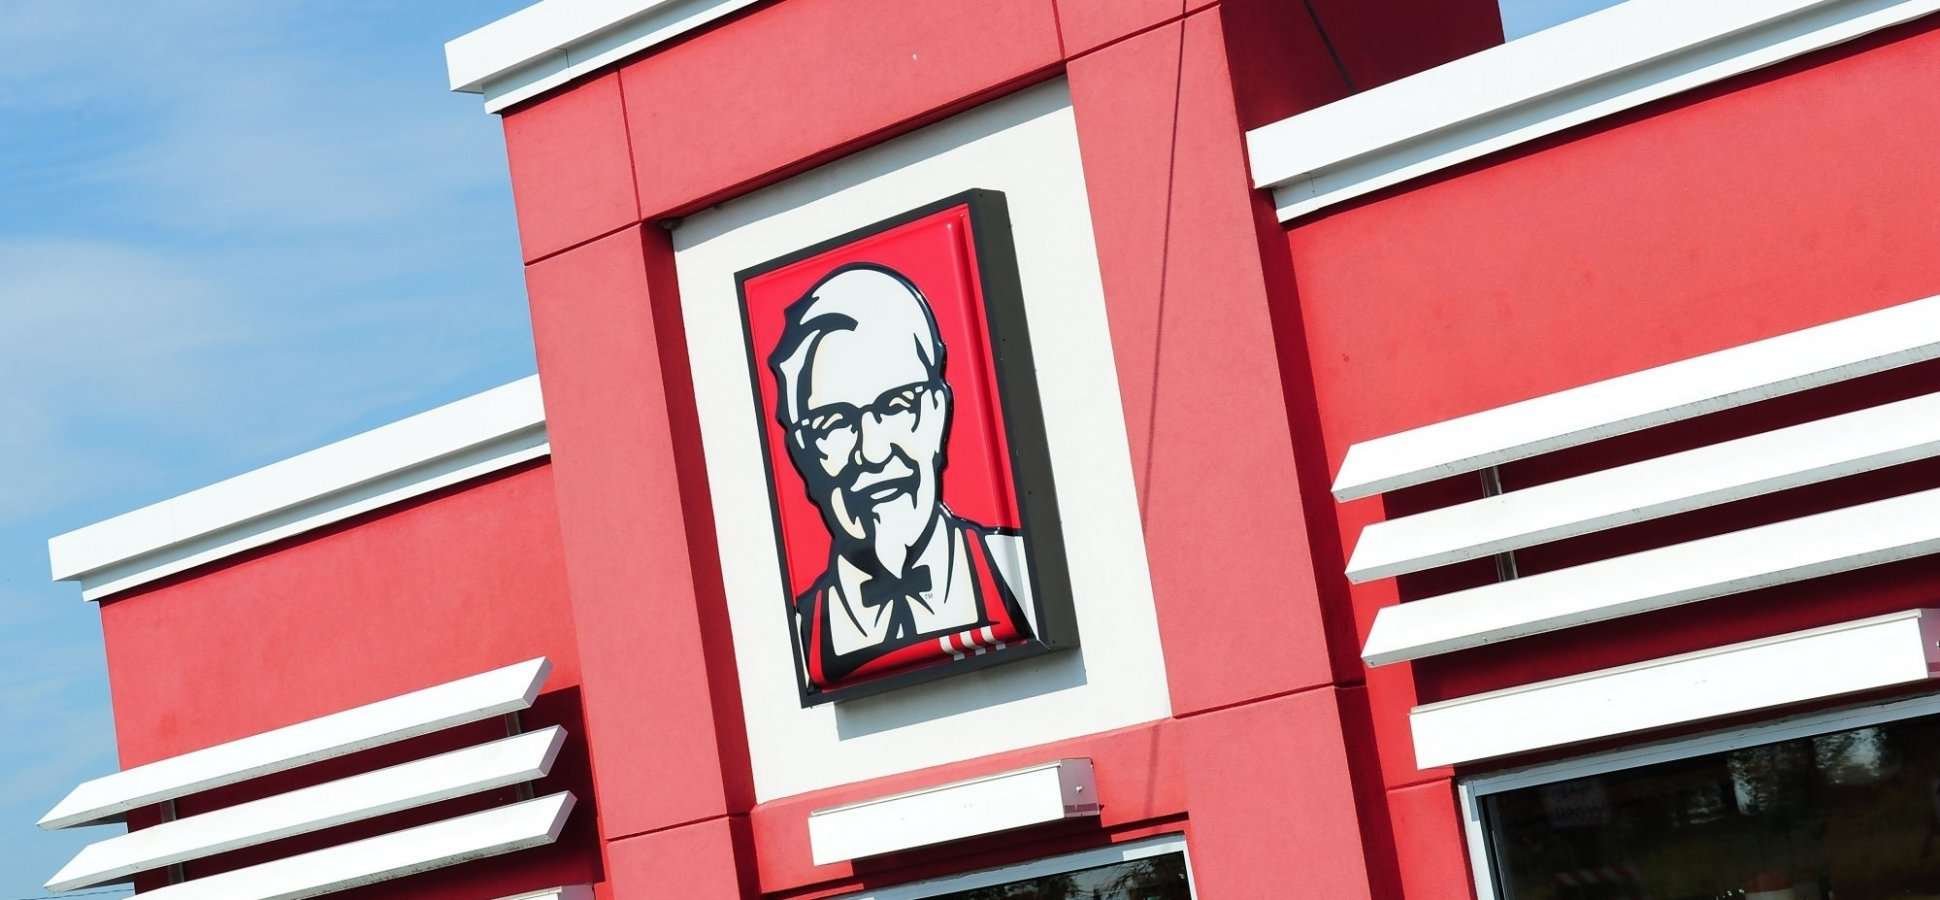 KFC Just Joined Burger King and Subway in Doing Something No One Would Have Believed Could Happen 20 Years Ago